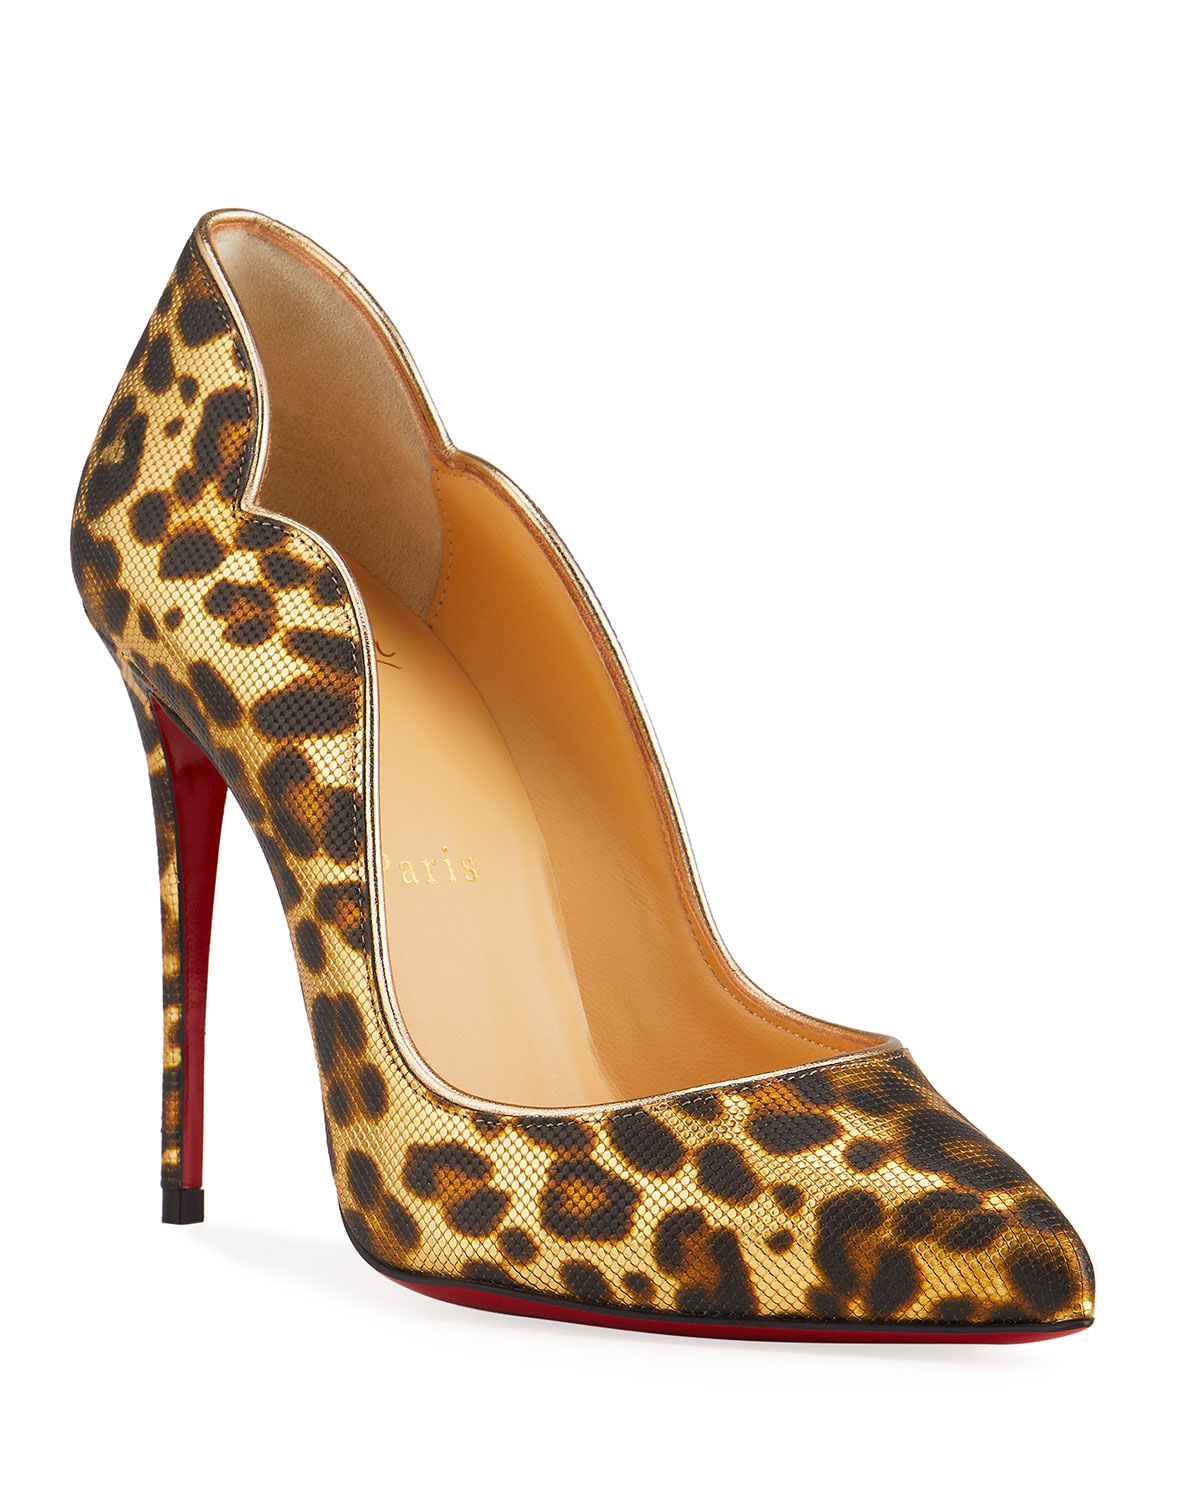 Christian Louboutin HOT CHICK 100MM LEOPARD-PRINT RED SOLE PUMPS